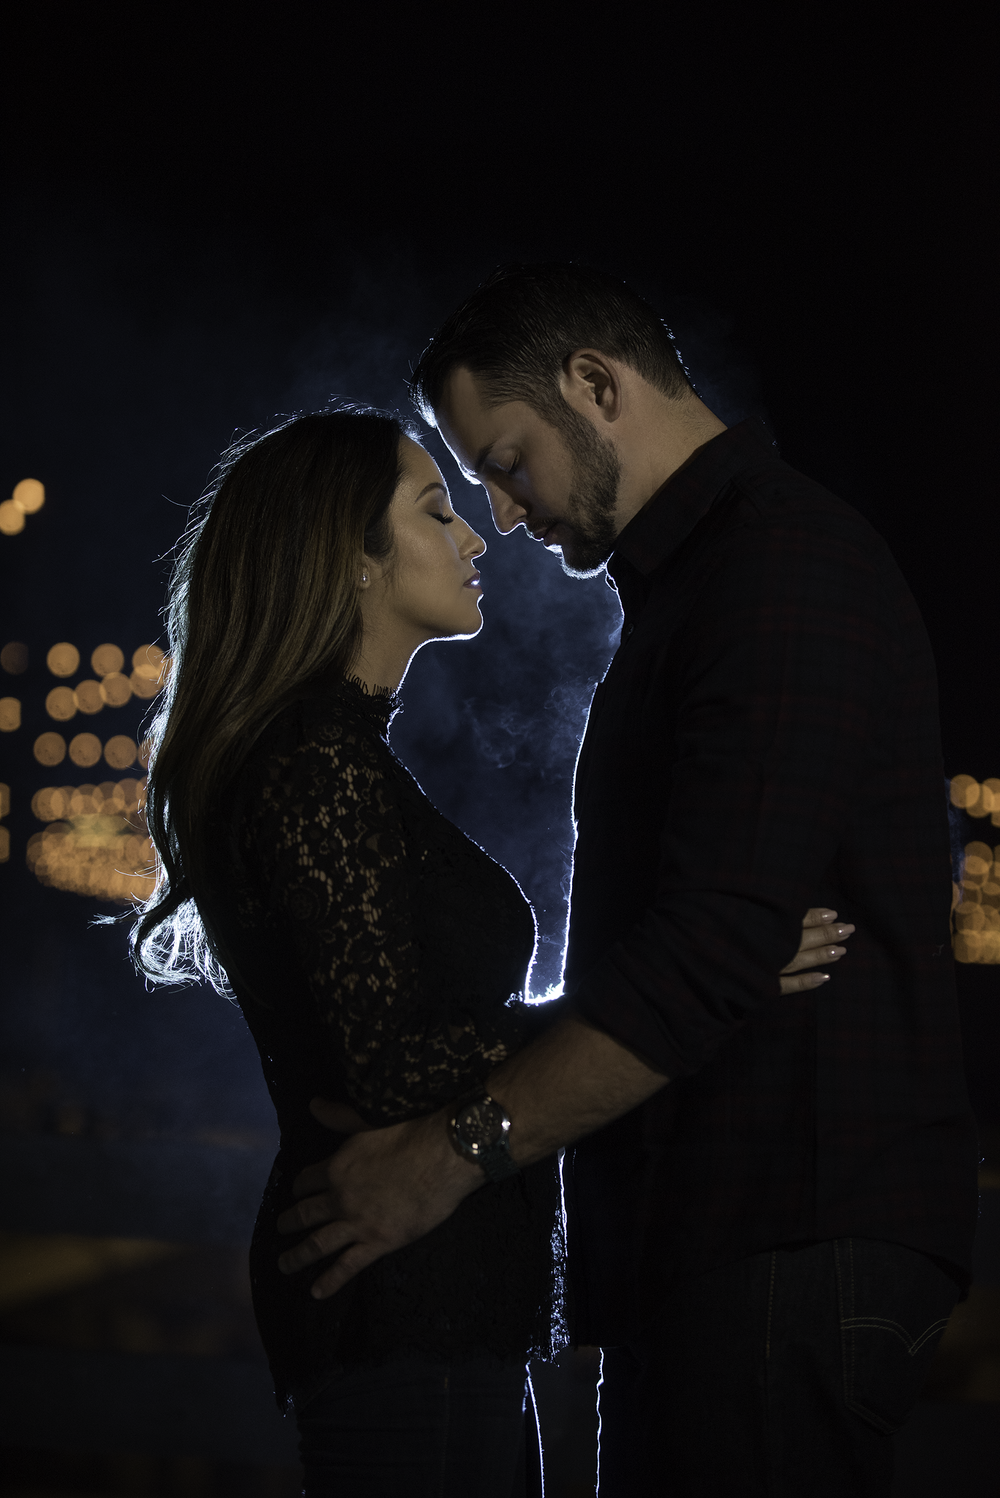 Magmod dramatic light and vape smoke engagement photo